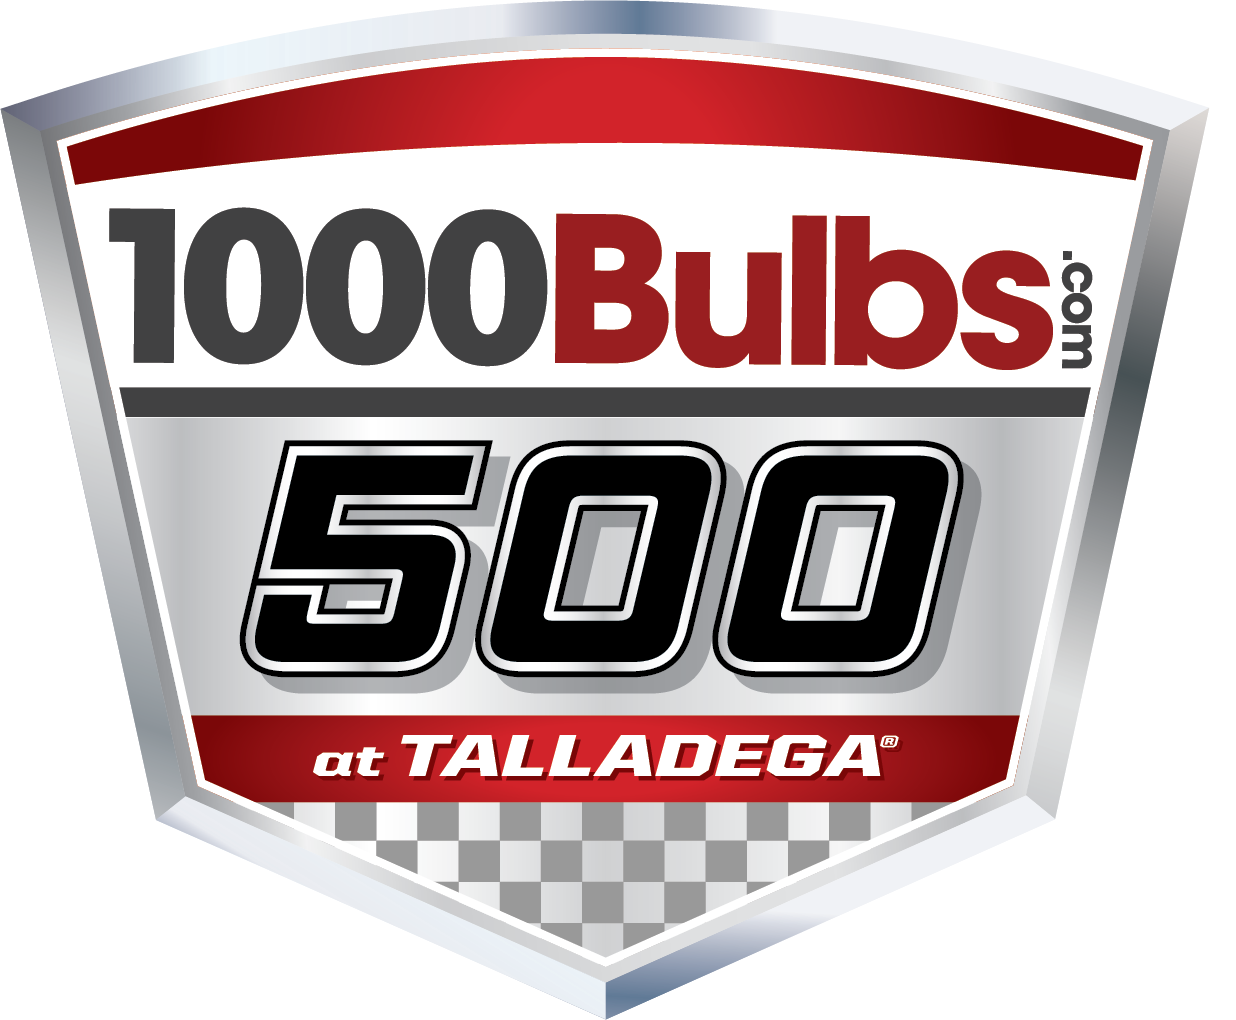 October 13-14, 2018 1000Bulbs.com 500 Sat-Sun Combo (Downtown Birmingham) DEGA-1018-Combo-DTN